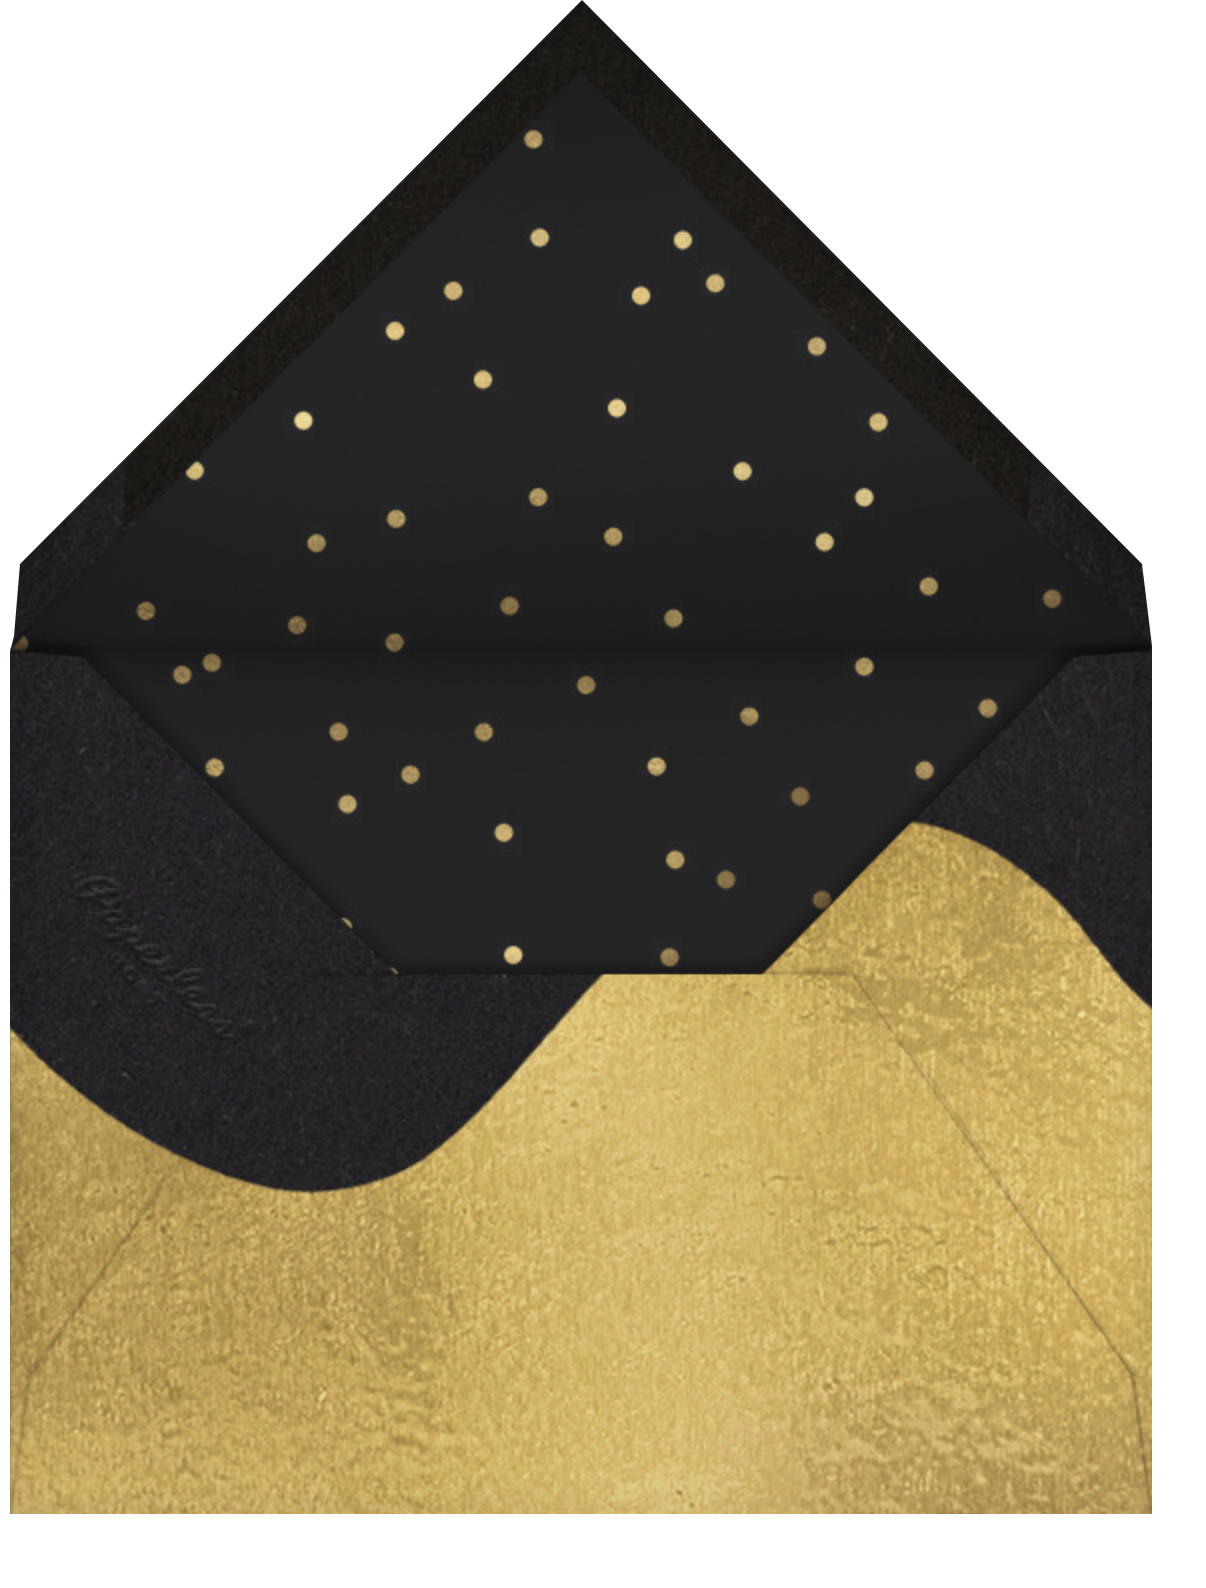 Strawberry Fields New Year - Rifle Paper Co. - Envelope